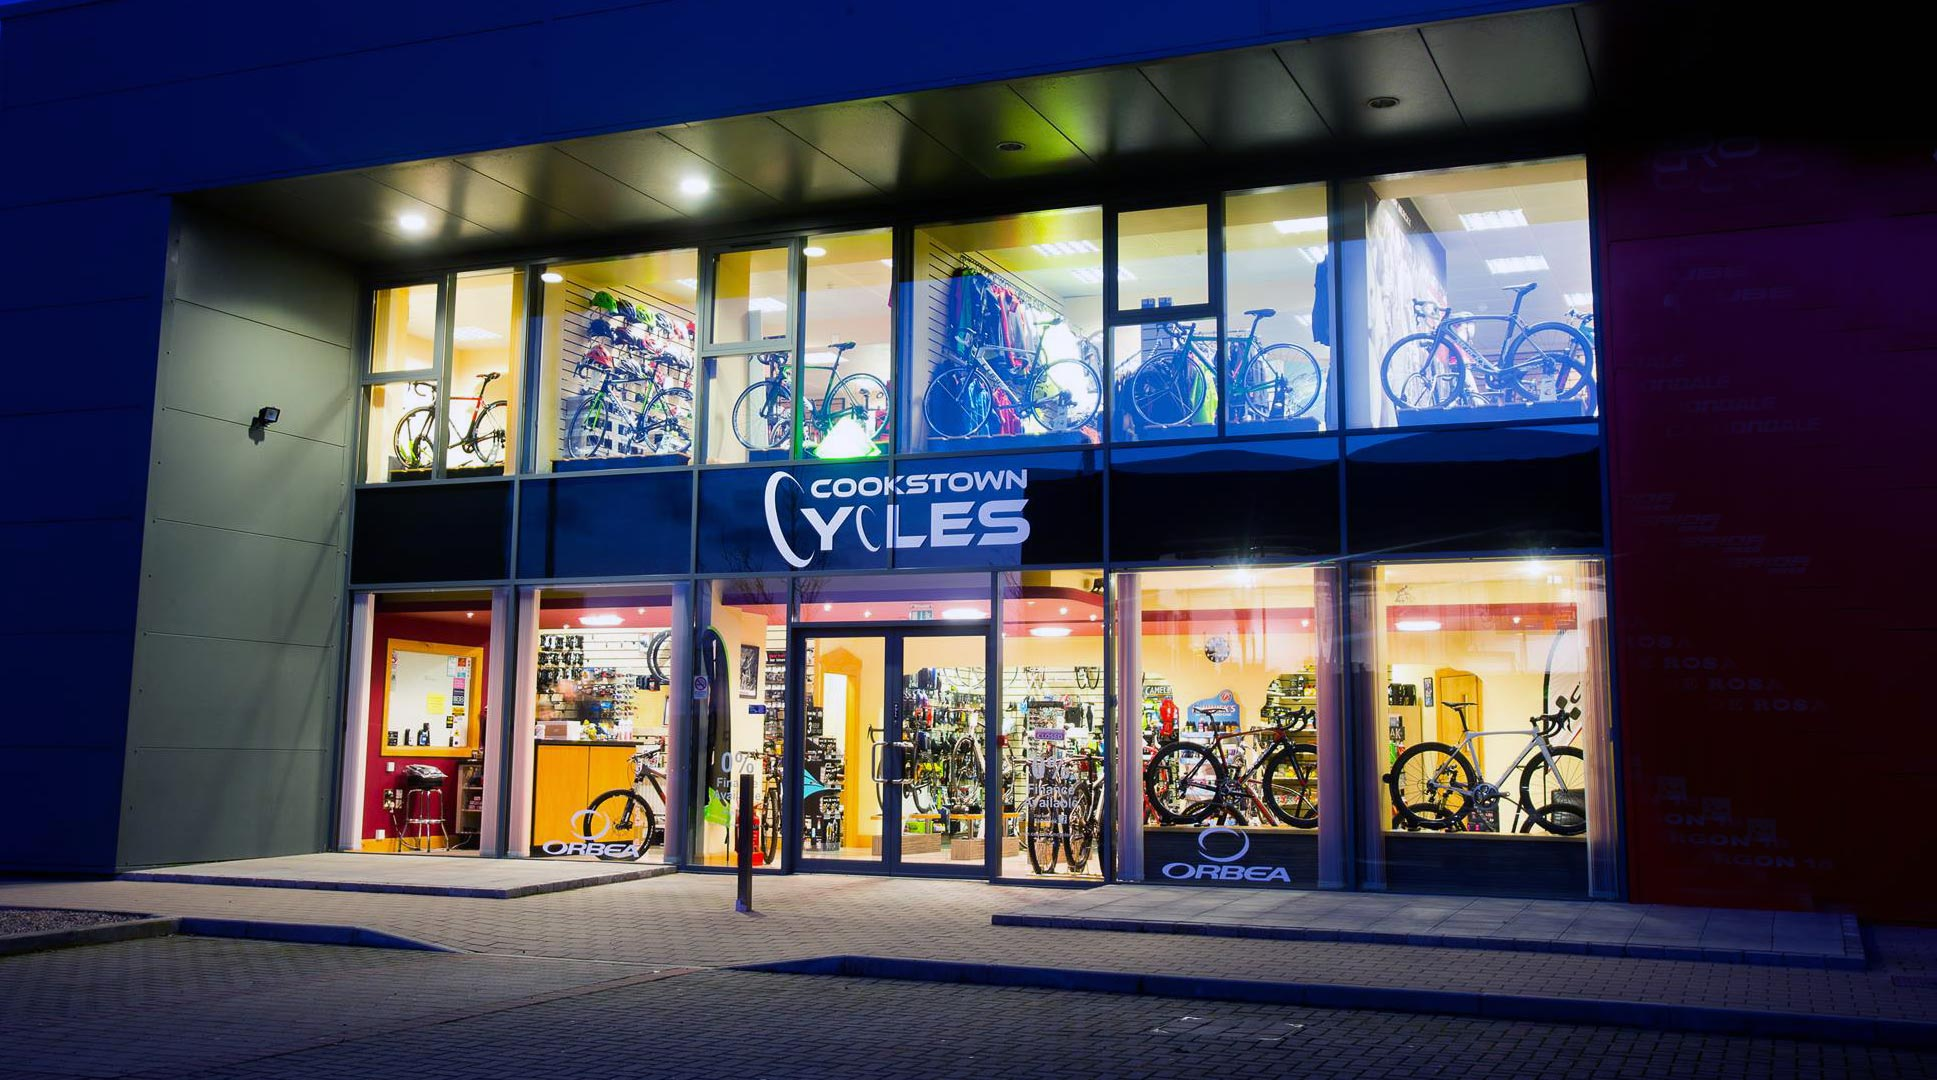 Cookstown Cycles